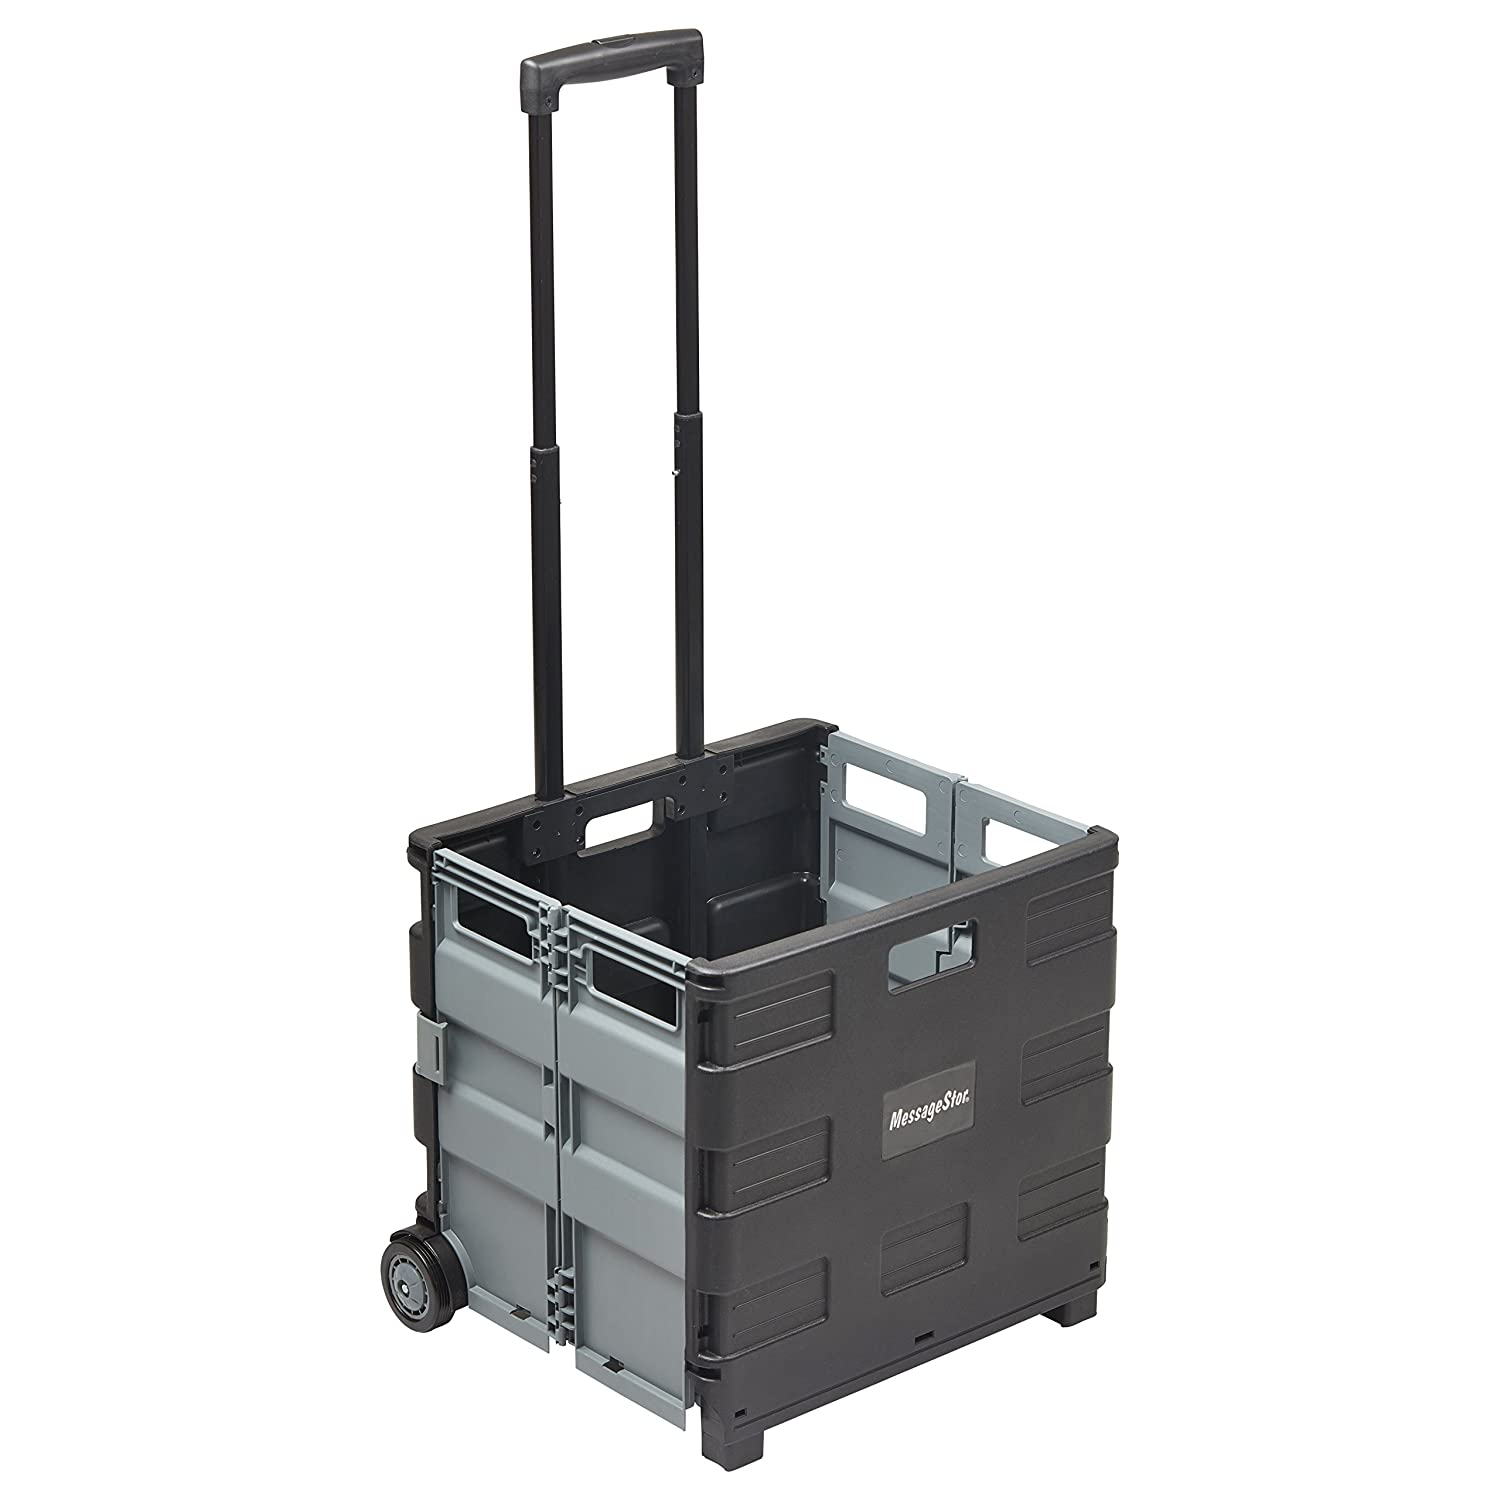 Amazon.com: Folding - Utility Carts / Carts & Stands: Office Products